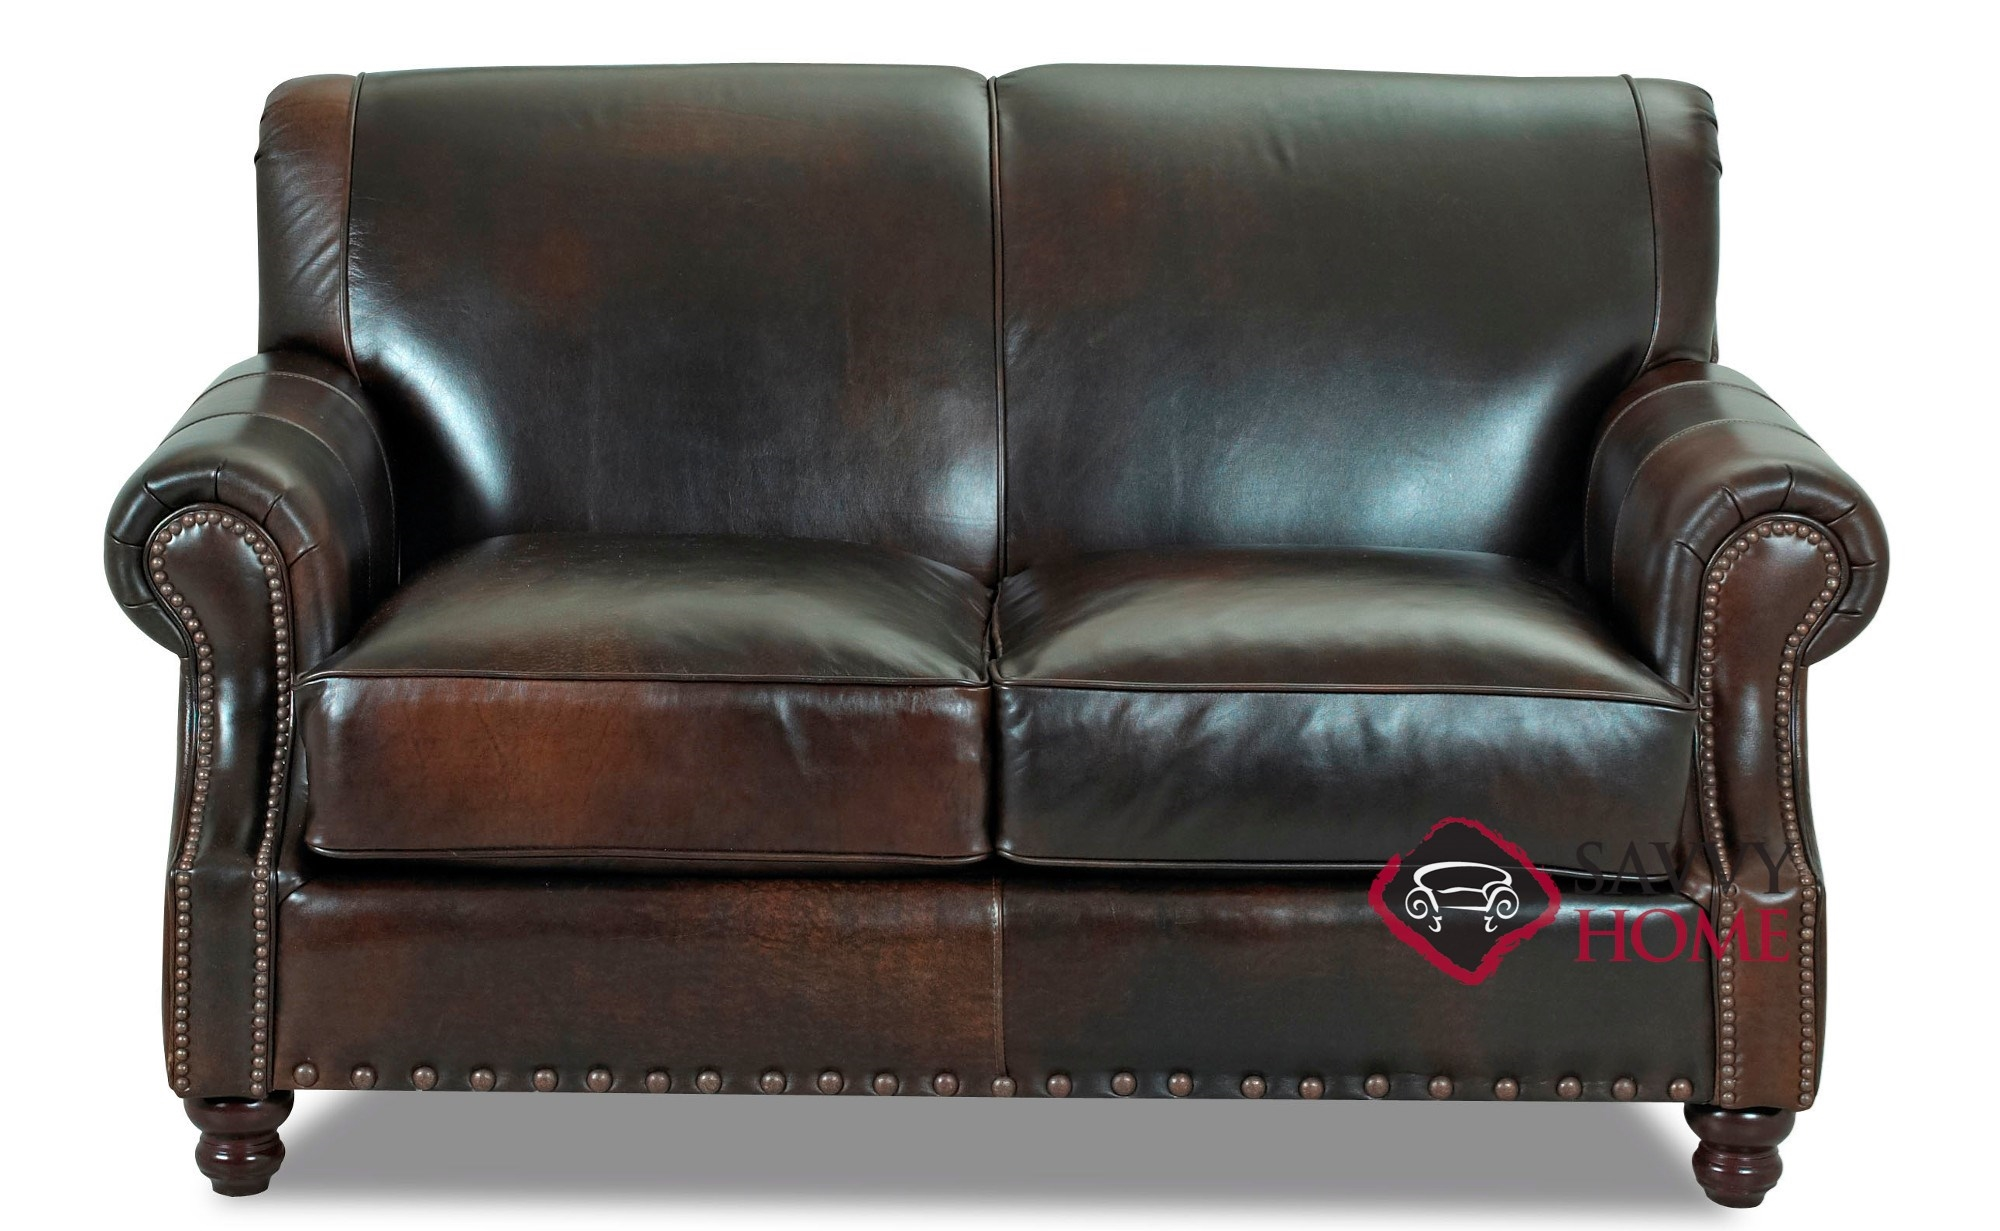 Stupendous Fairbanks Leather Loveseat By Savvy Gmtry Best Dining Table And Chair Ideas Images Gmtryco